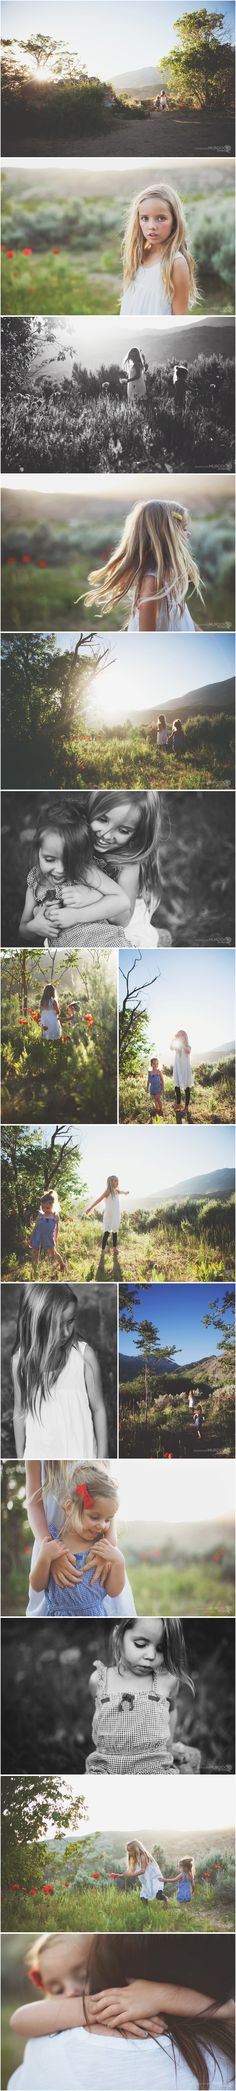 I believe in letting kids be kids and capturing their pure moments, beautiful!